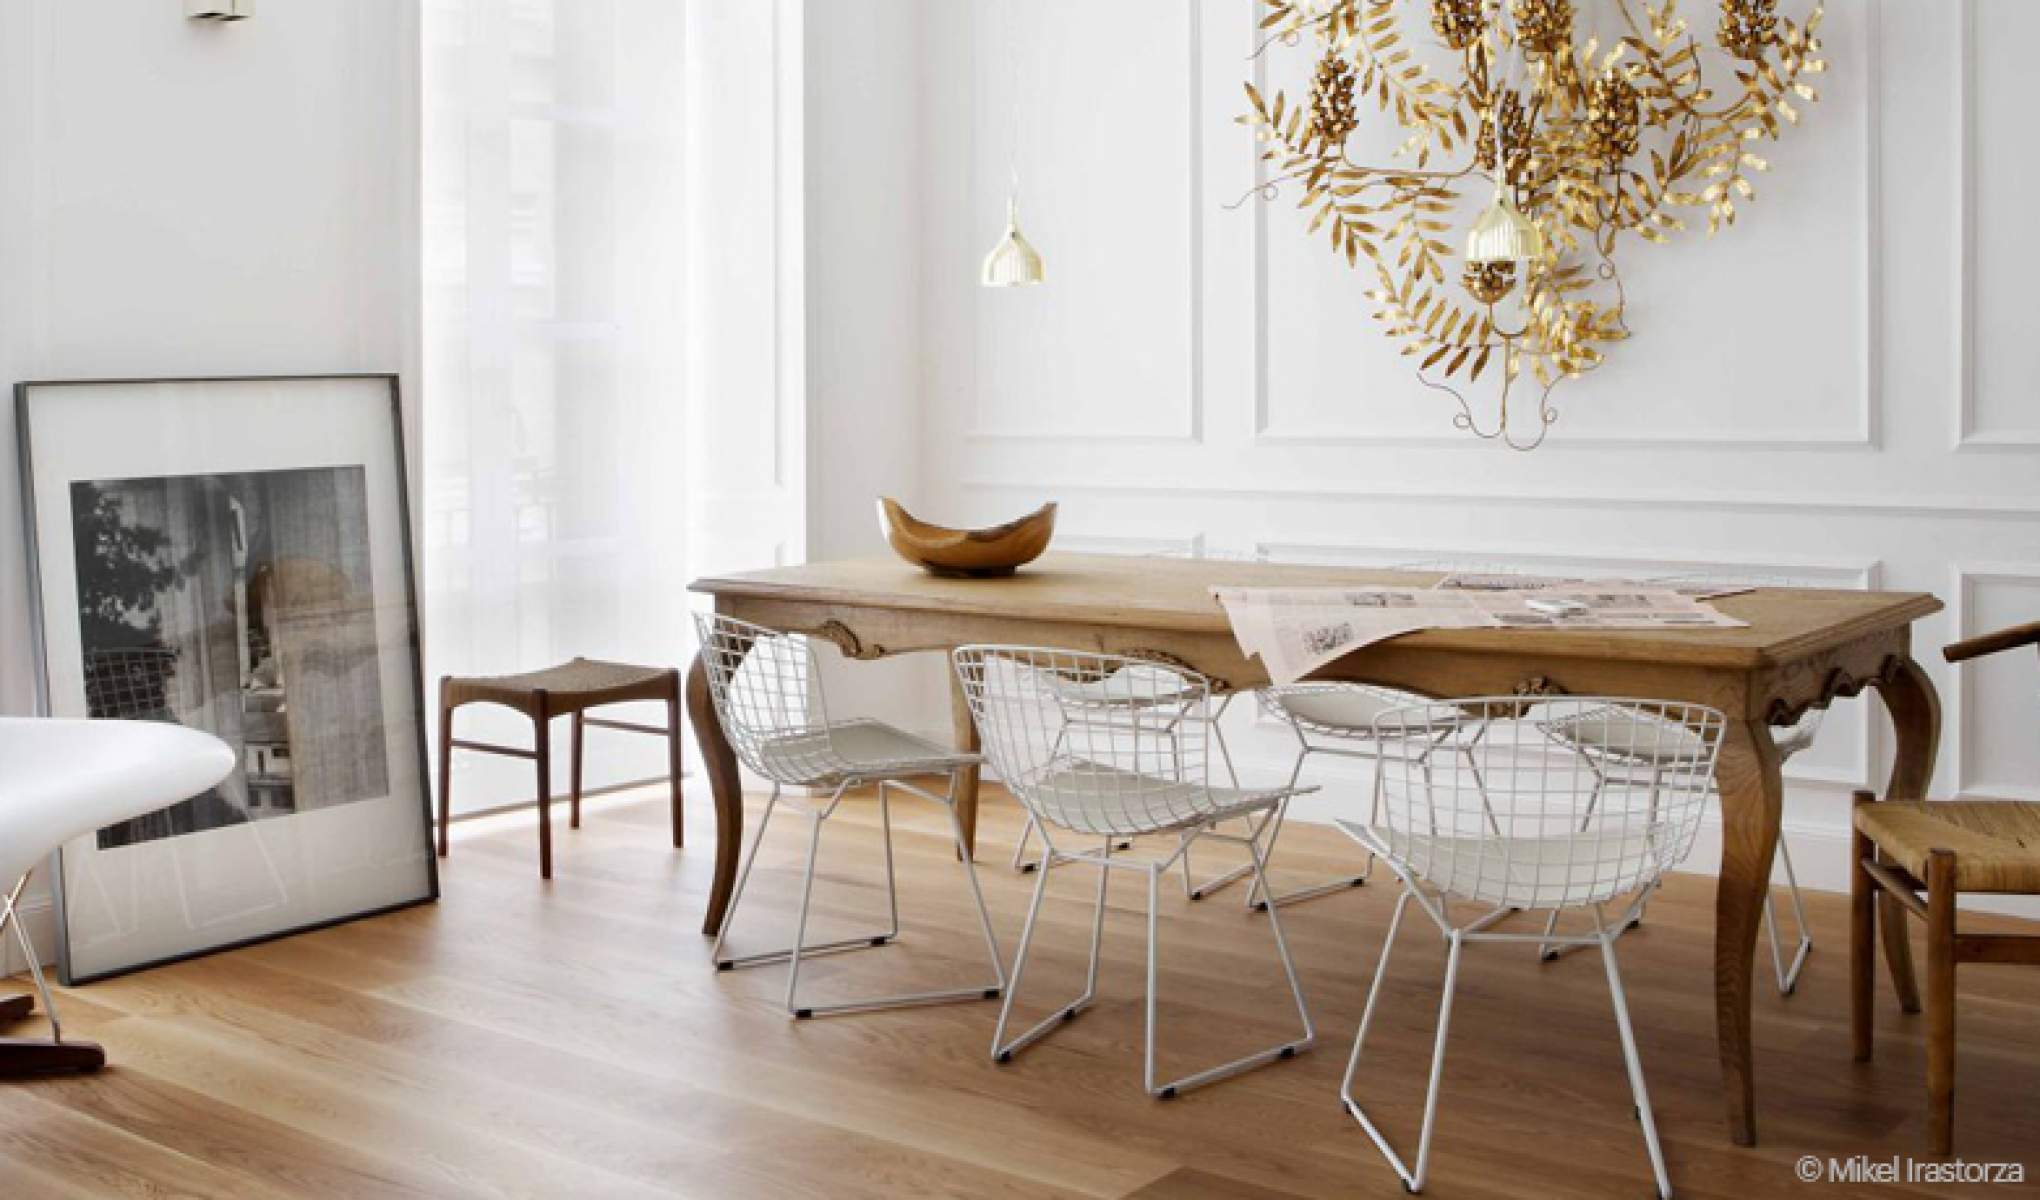 Salle A Manger Vintage Moderne Stunning Table Ancienne Et Chaises Modernes Photos